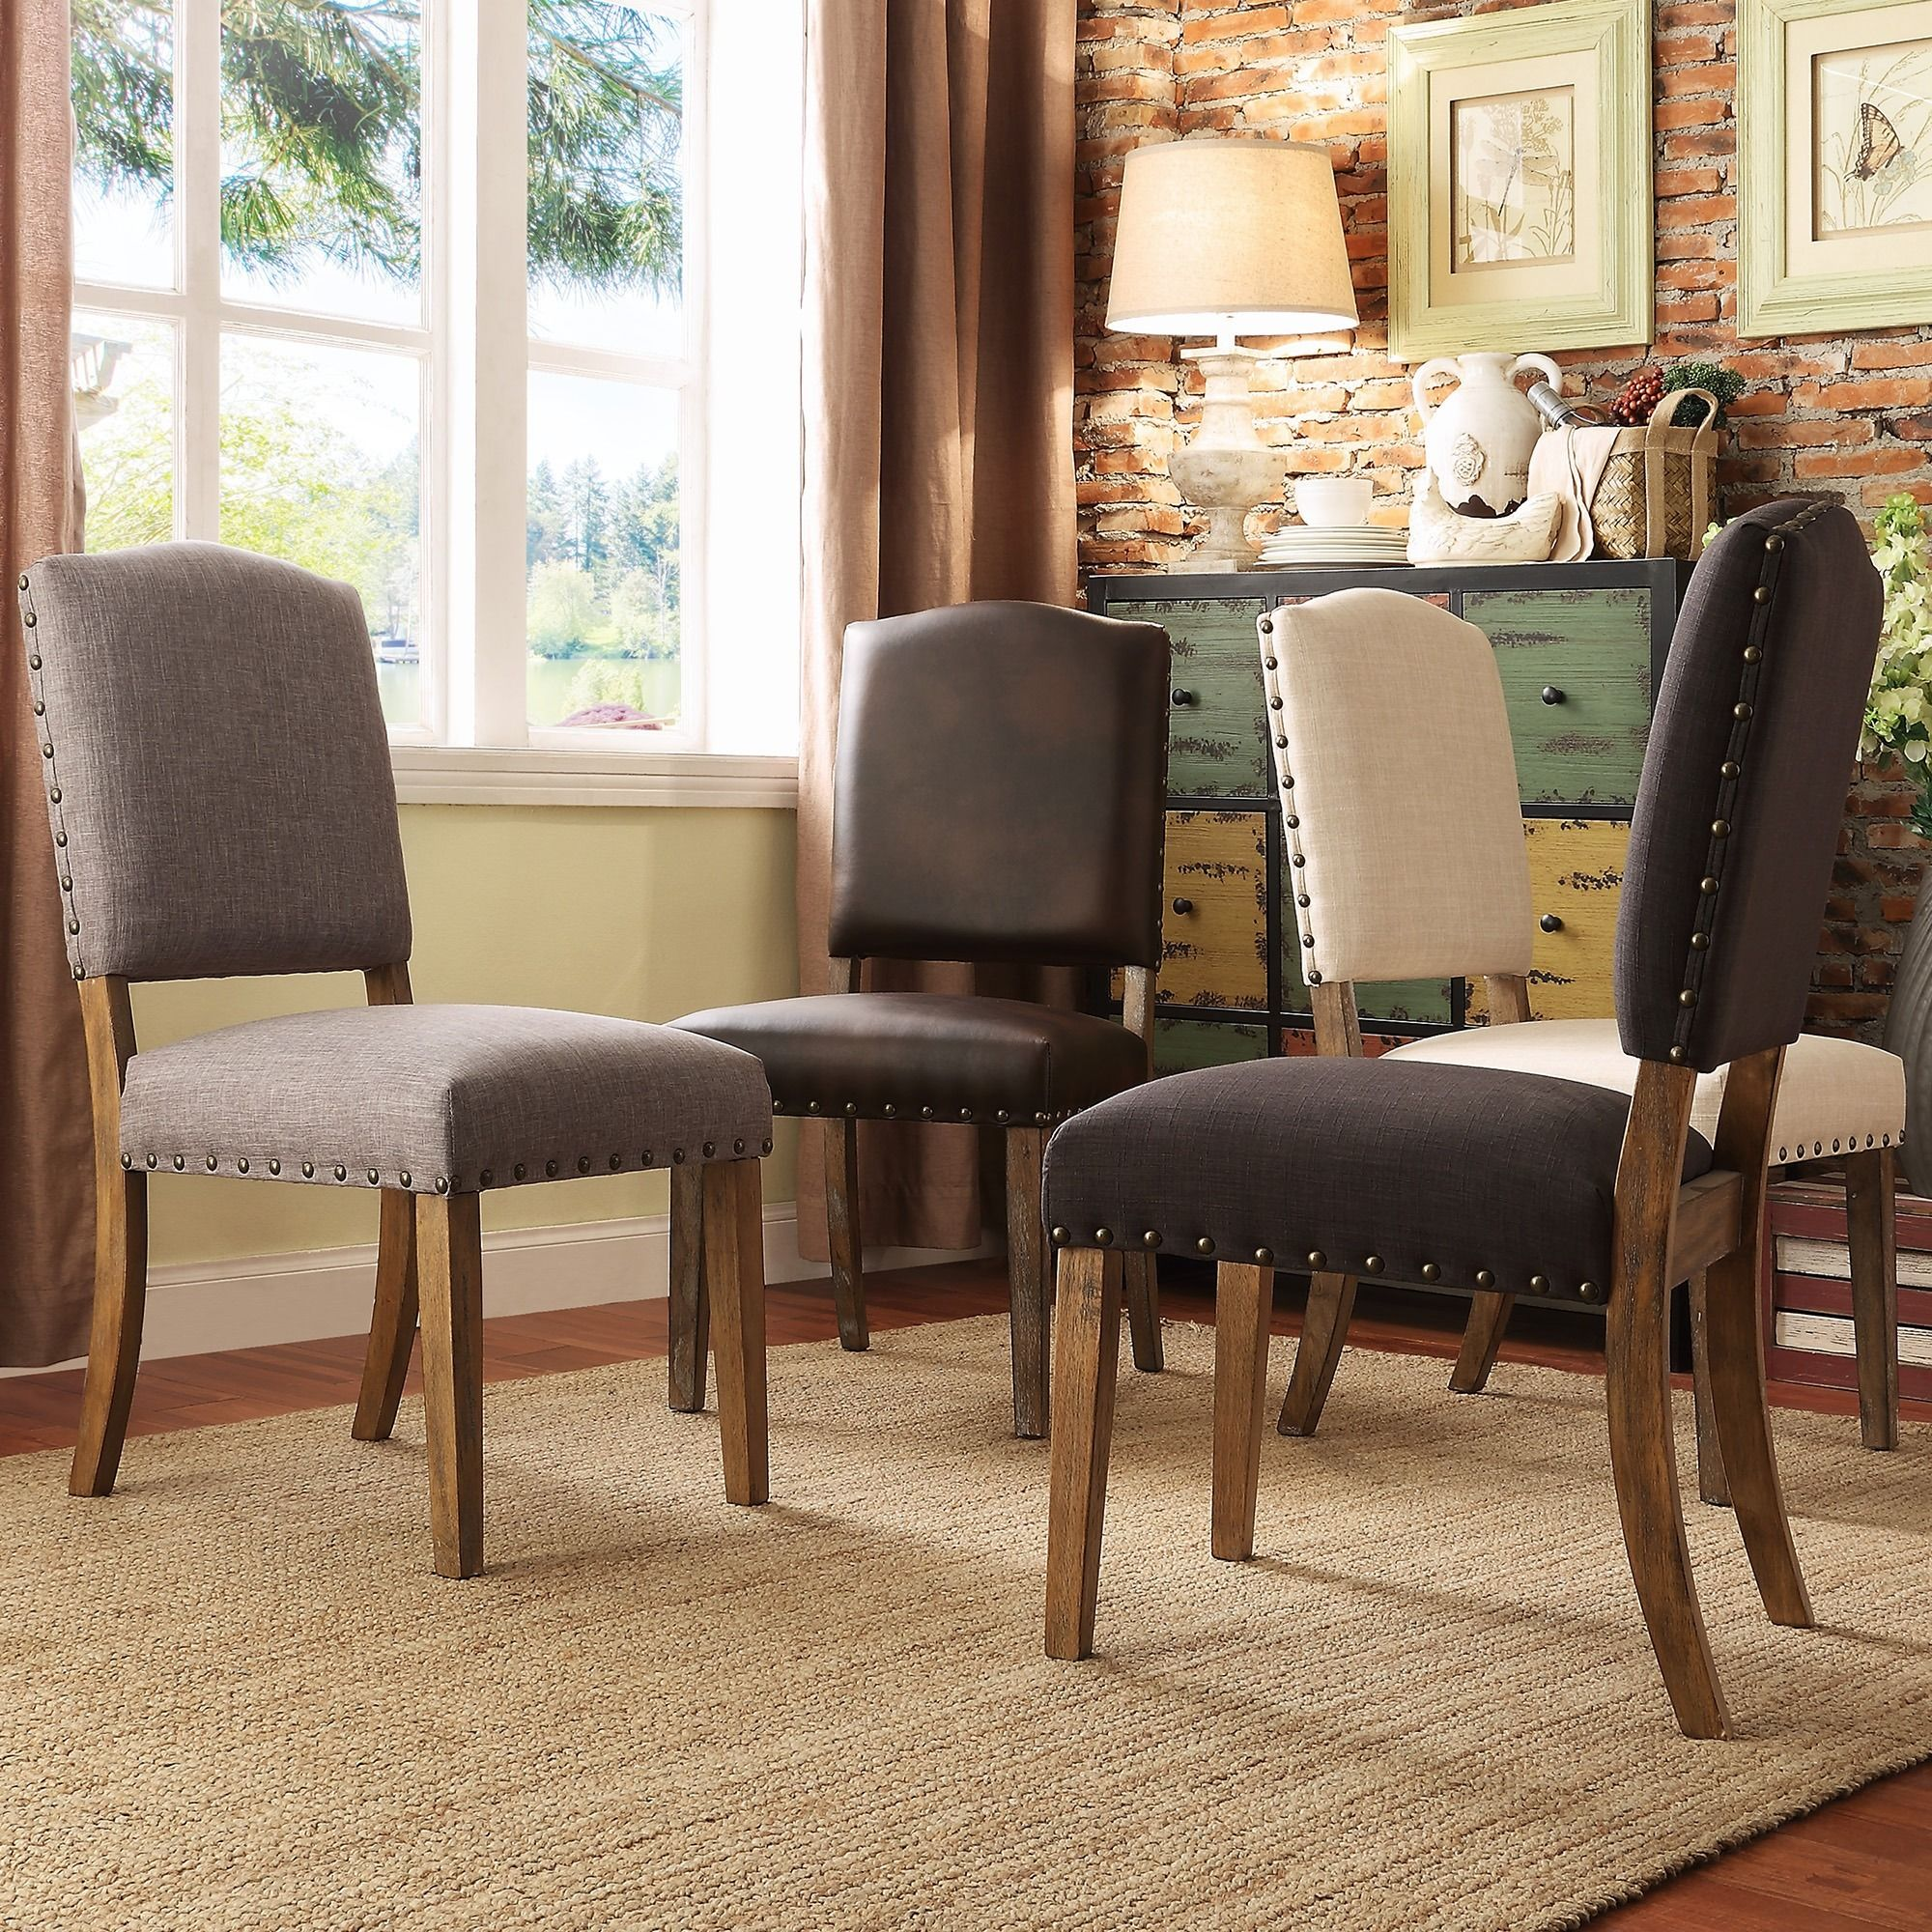 Overstock Living Room Chairs Benchwright Nailhead Upholstered Dining Chairs By Signal Hills